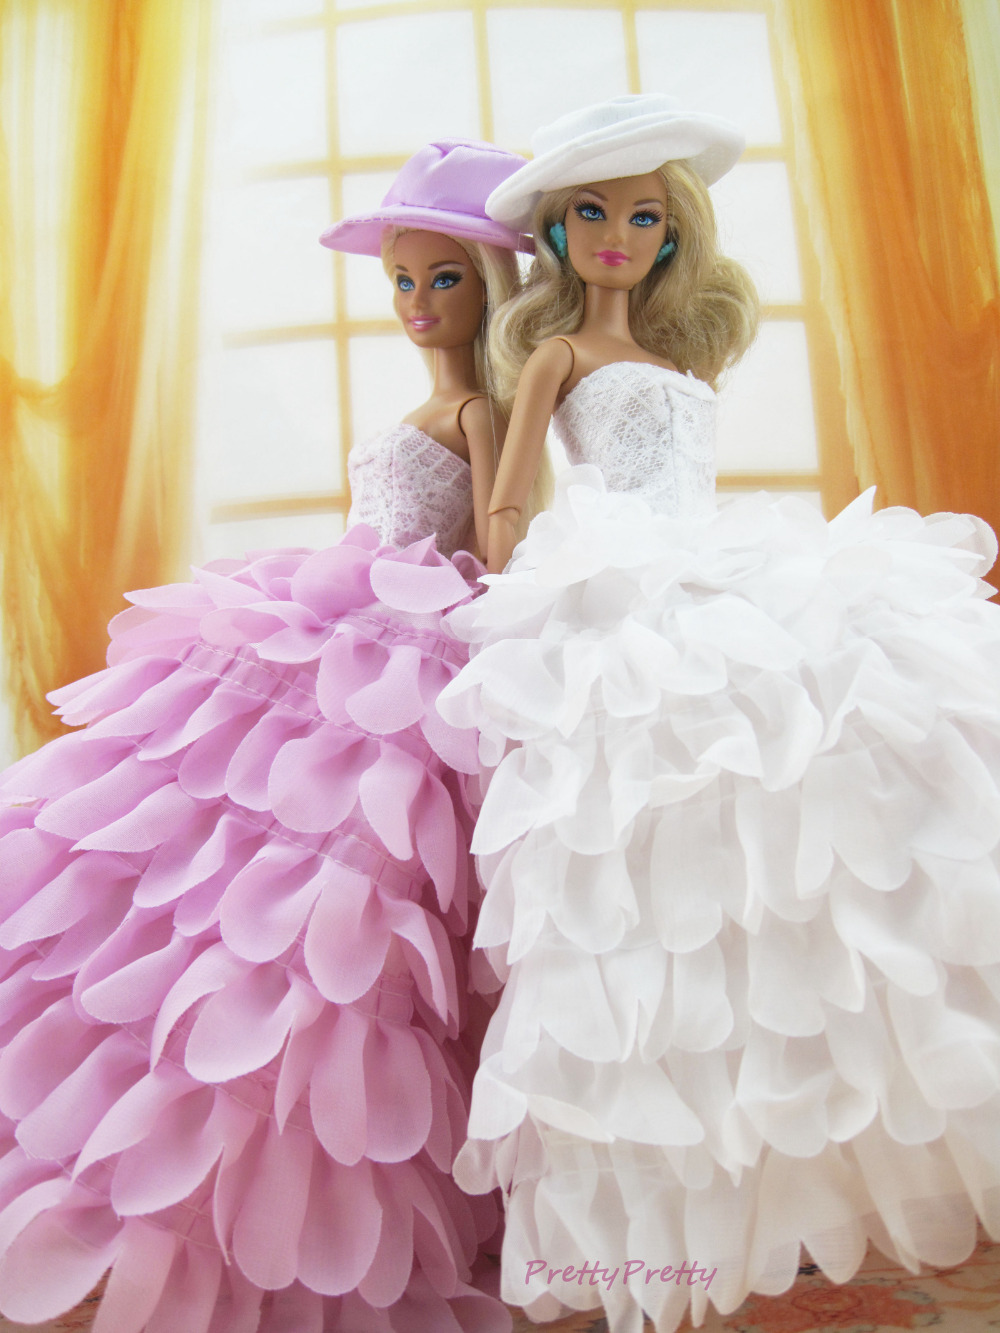 Two Style Fashion Handmade Wedding Gown Princess Dress Party Outfit ...